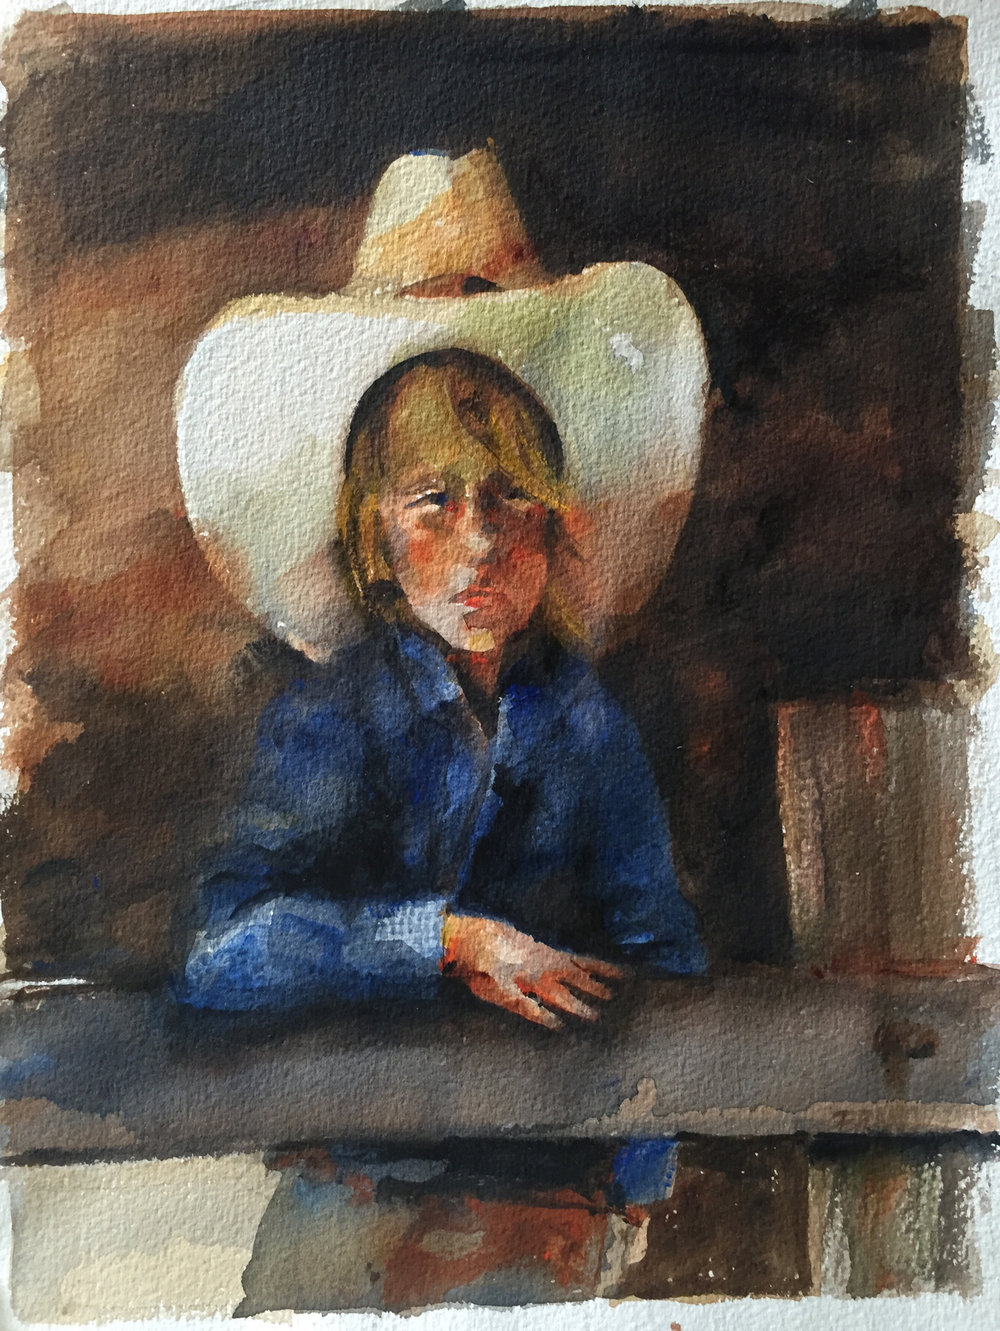 Farmer-Wife-Water-Colour-Painting-by-Frano.jpg